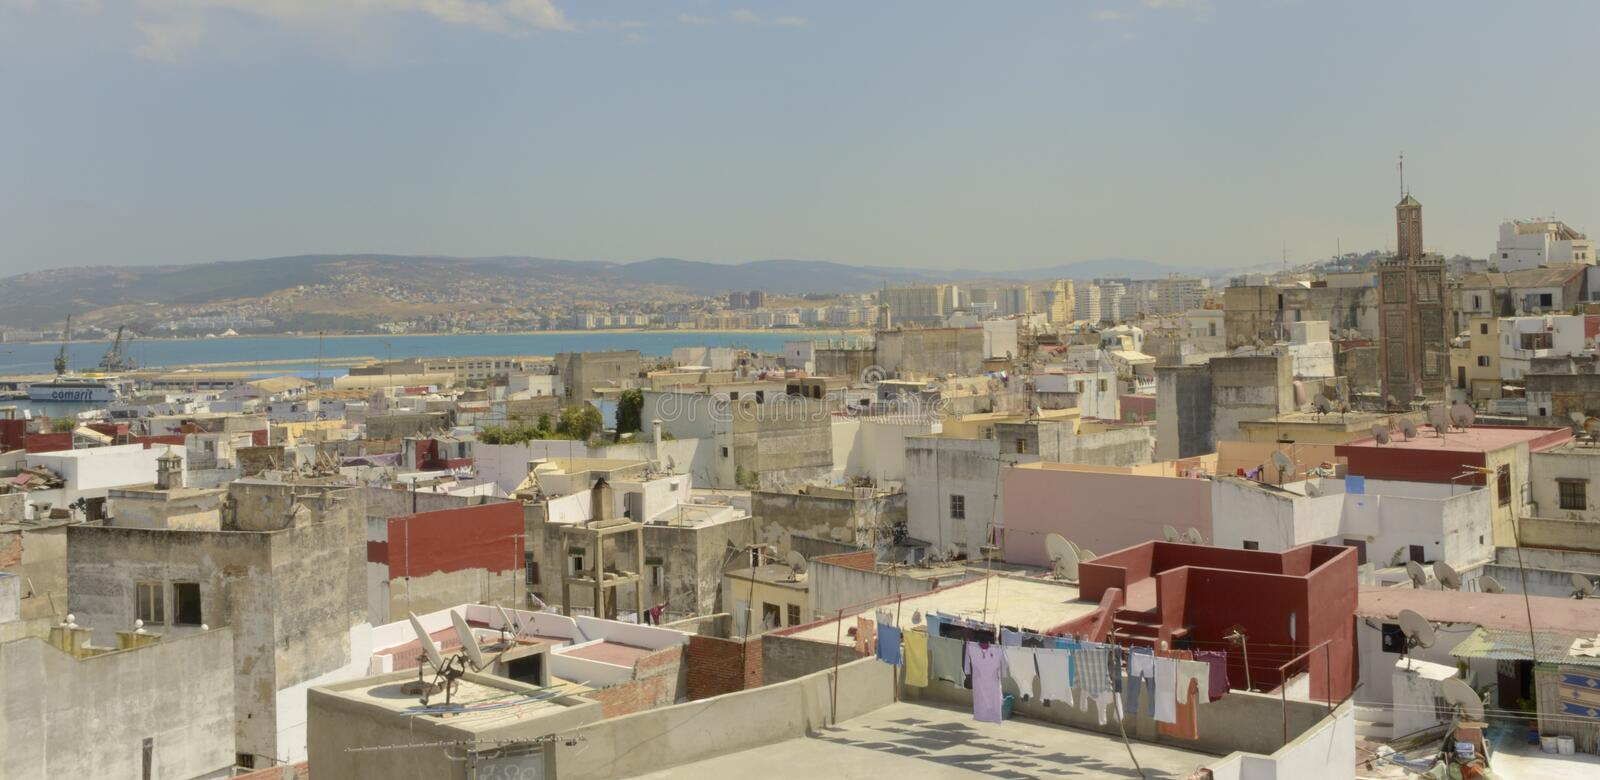 Roofs of Tangier stock image